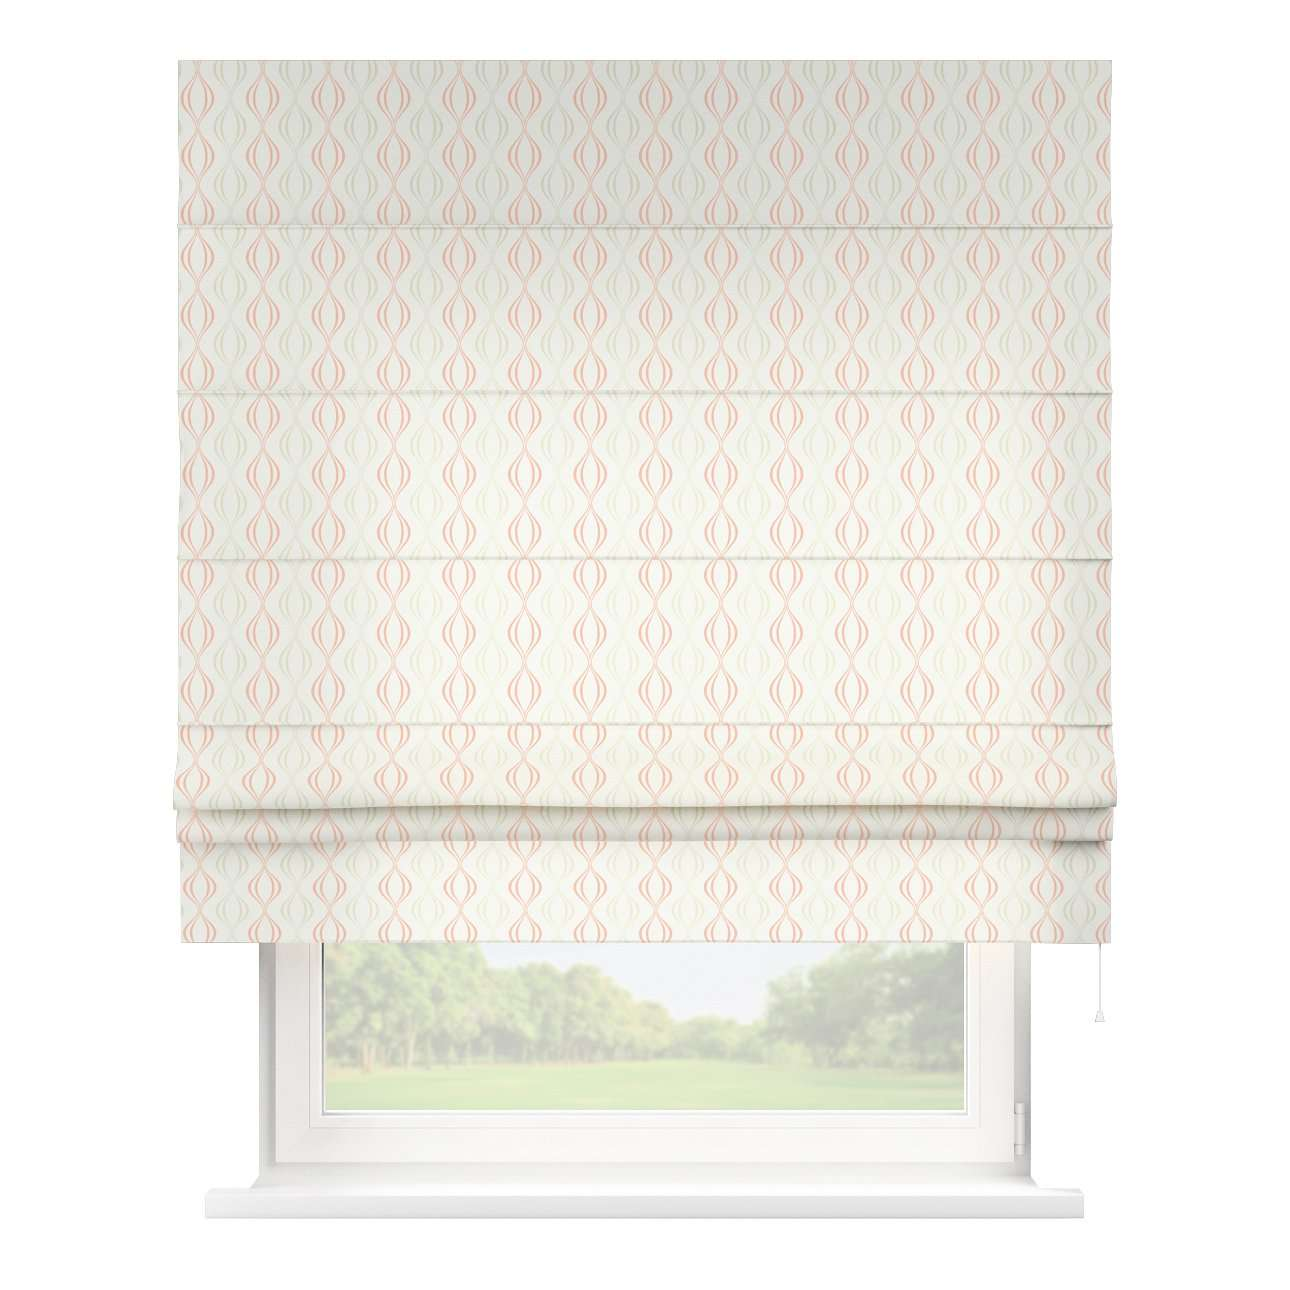 Padva roman blind  80 x 170 cm (31.5 x 67 inch) in collection Geometric, fabric: 141-49